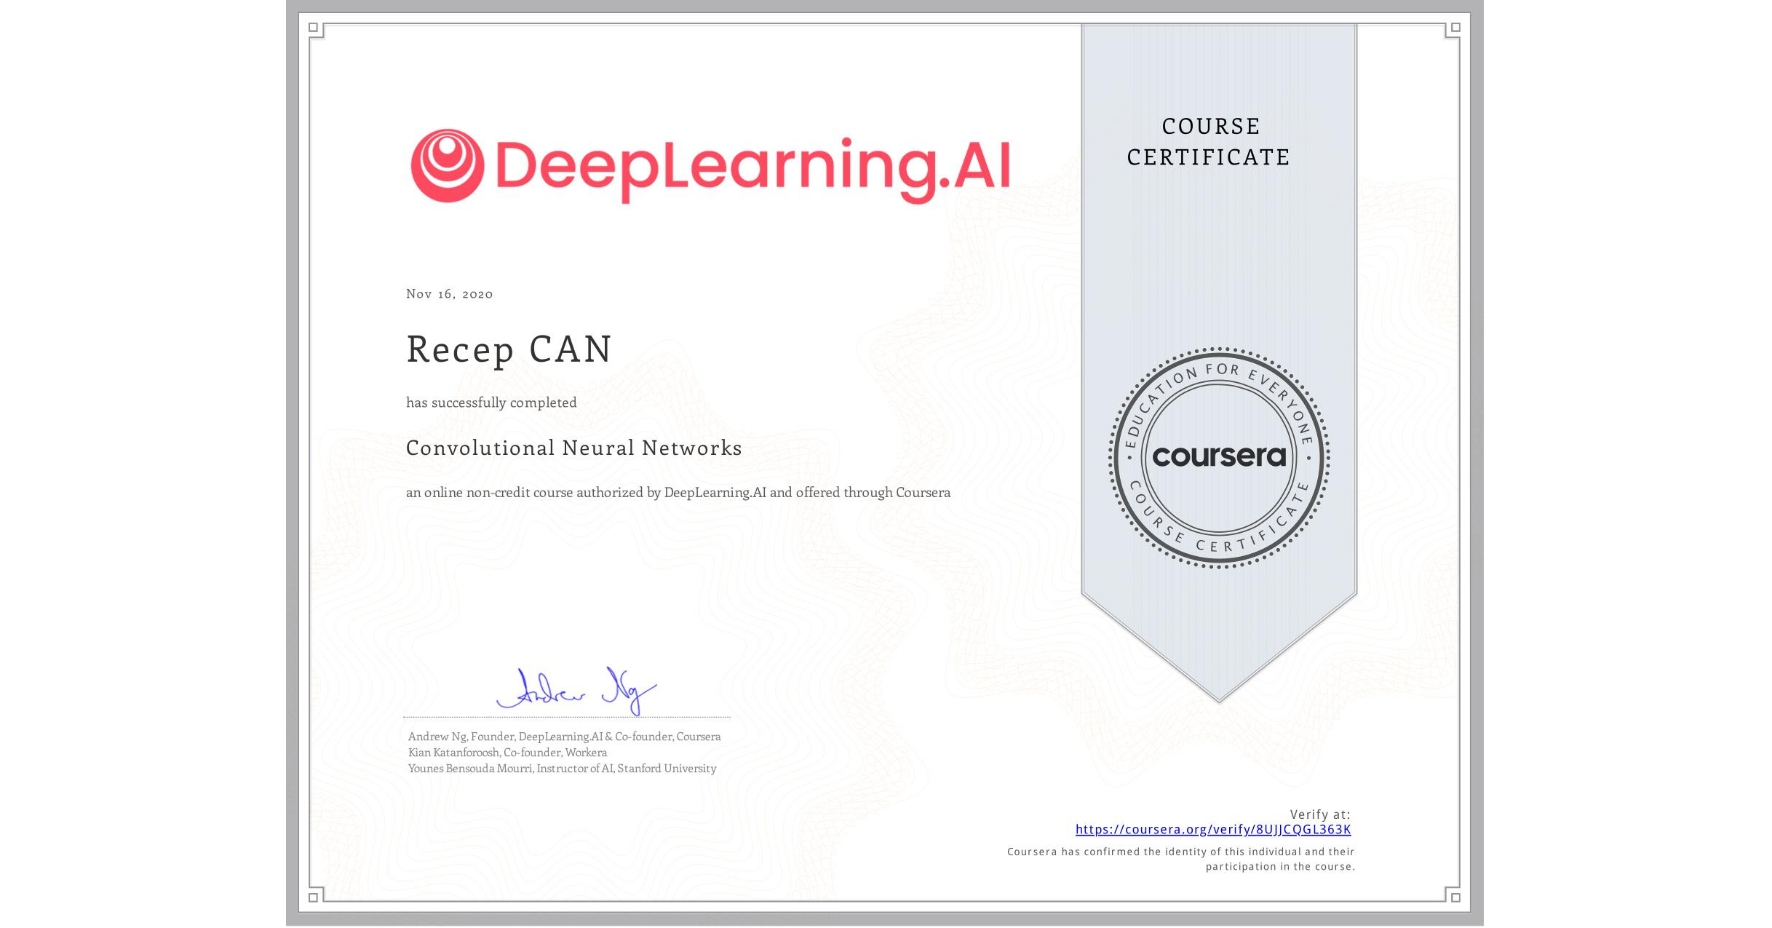 View certificate for Recep CAN, Convolutional Neural Networks, an online non-credit course authorized by DeepLearning.AI and offered through Coursera